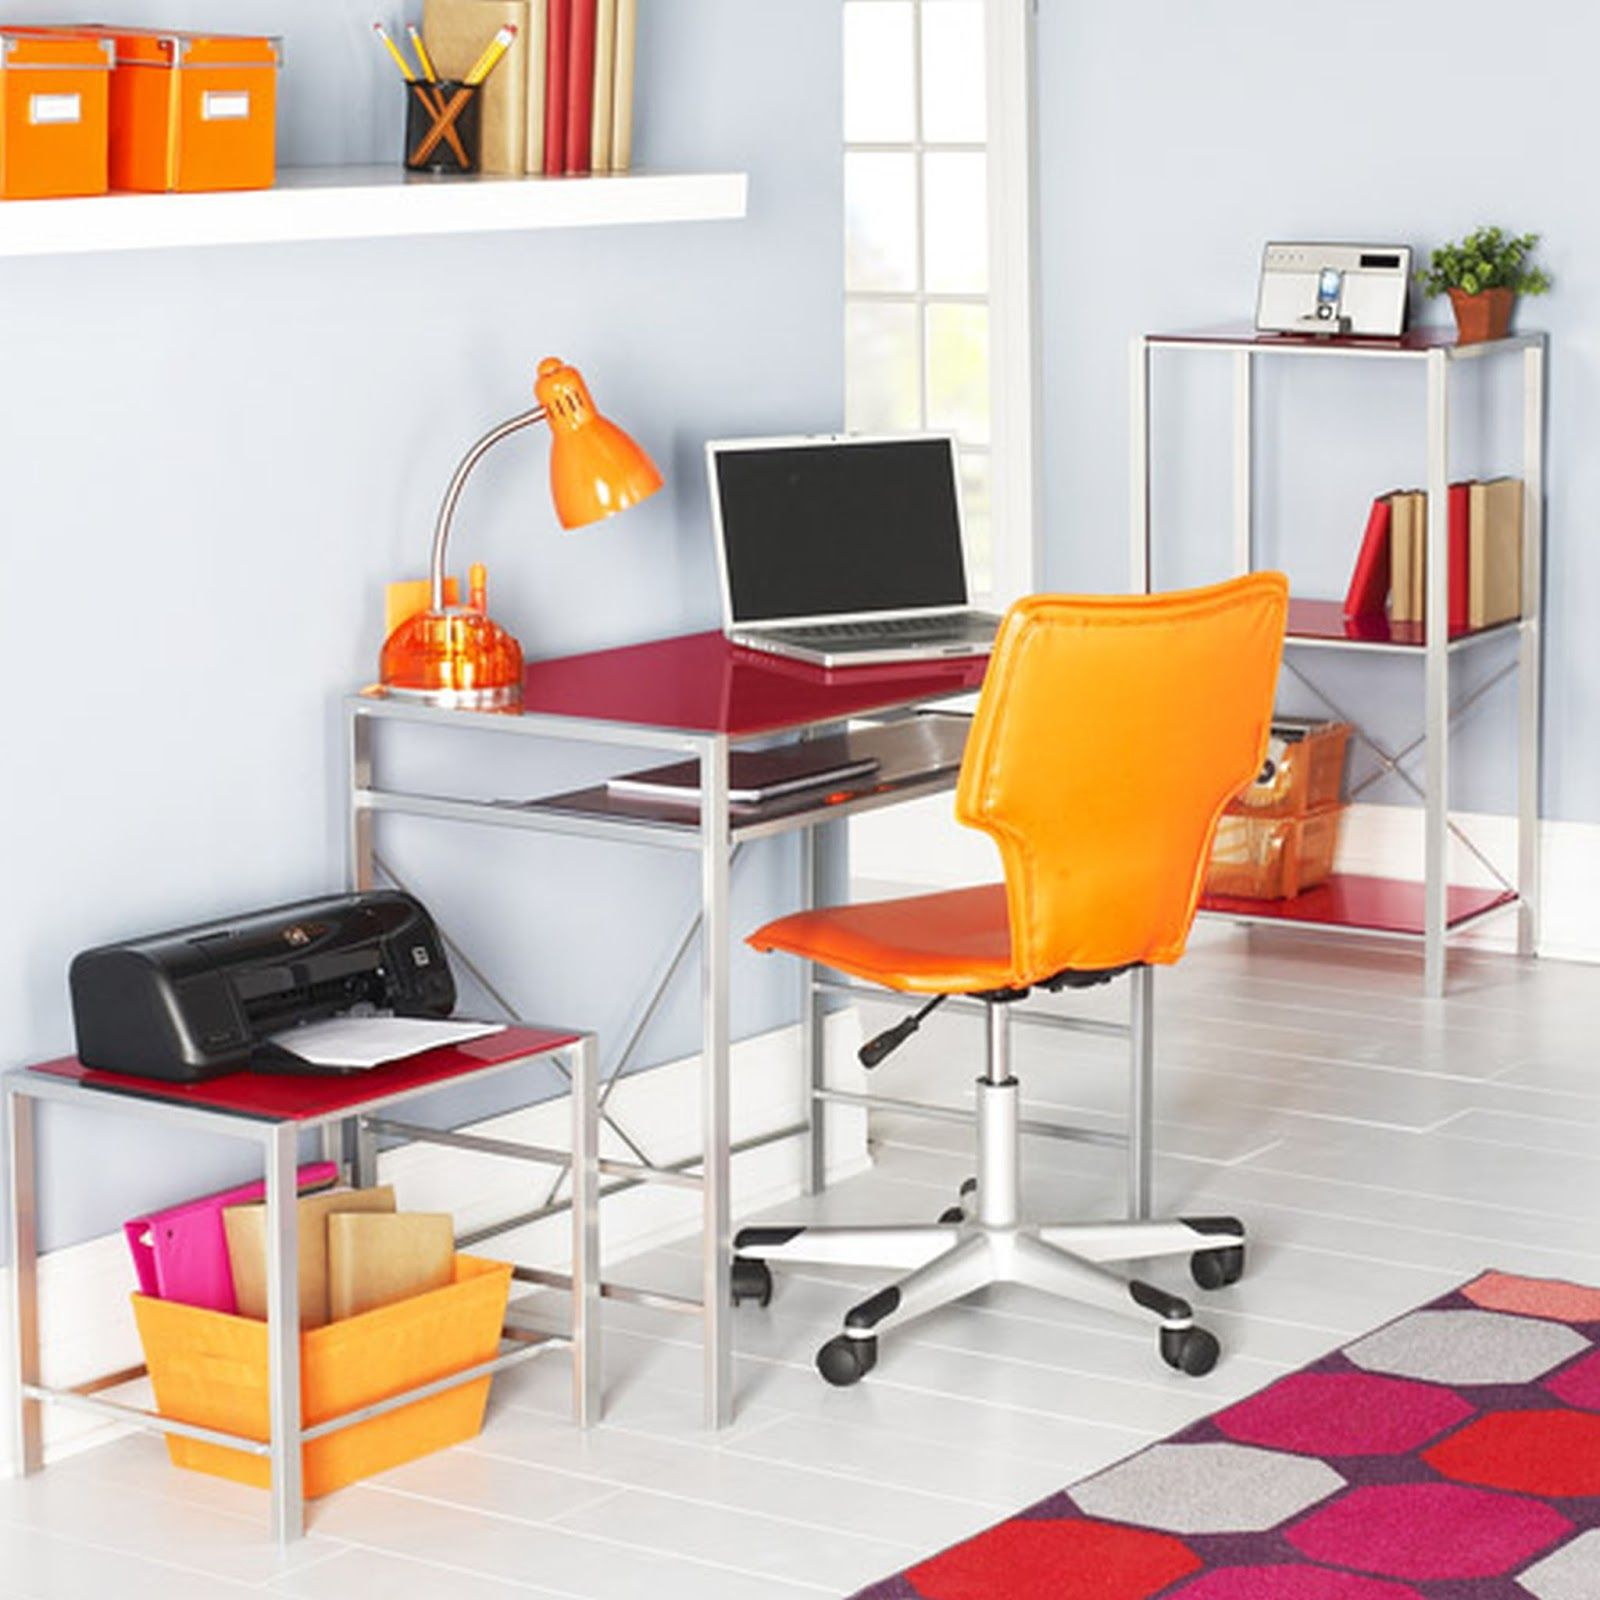 cool office storage. Work Apartment Office Red And Orange Home Furniture Metal Writing Computer Desk With Sliding Tier Open Storage Furniture: Professional Cool E